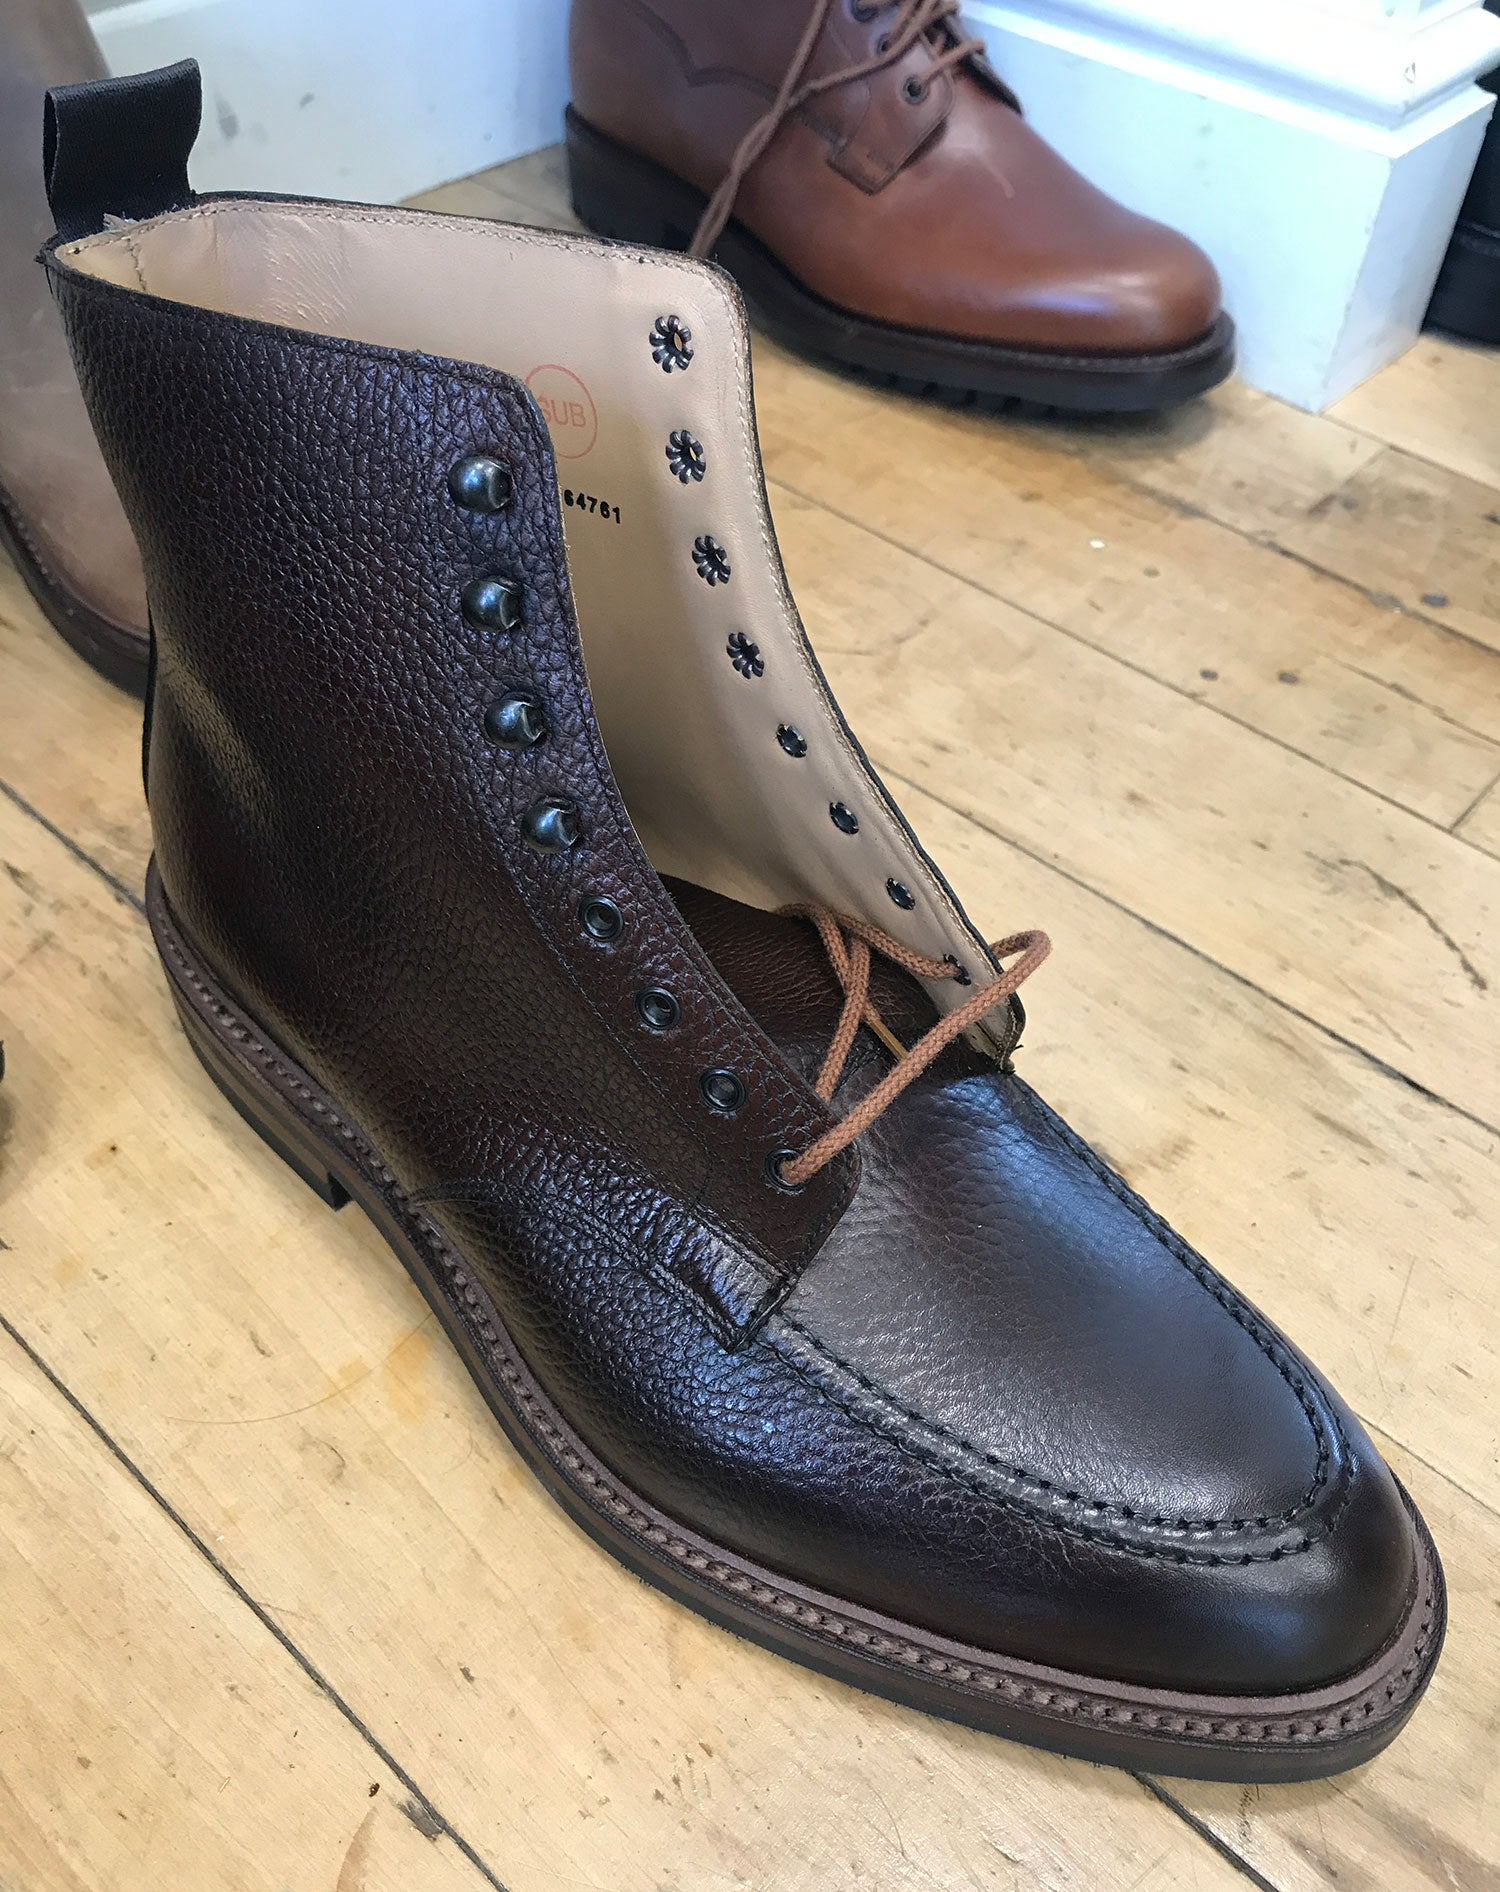 Crockett & Jones galway boots